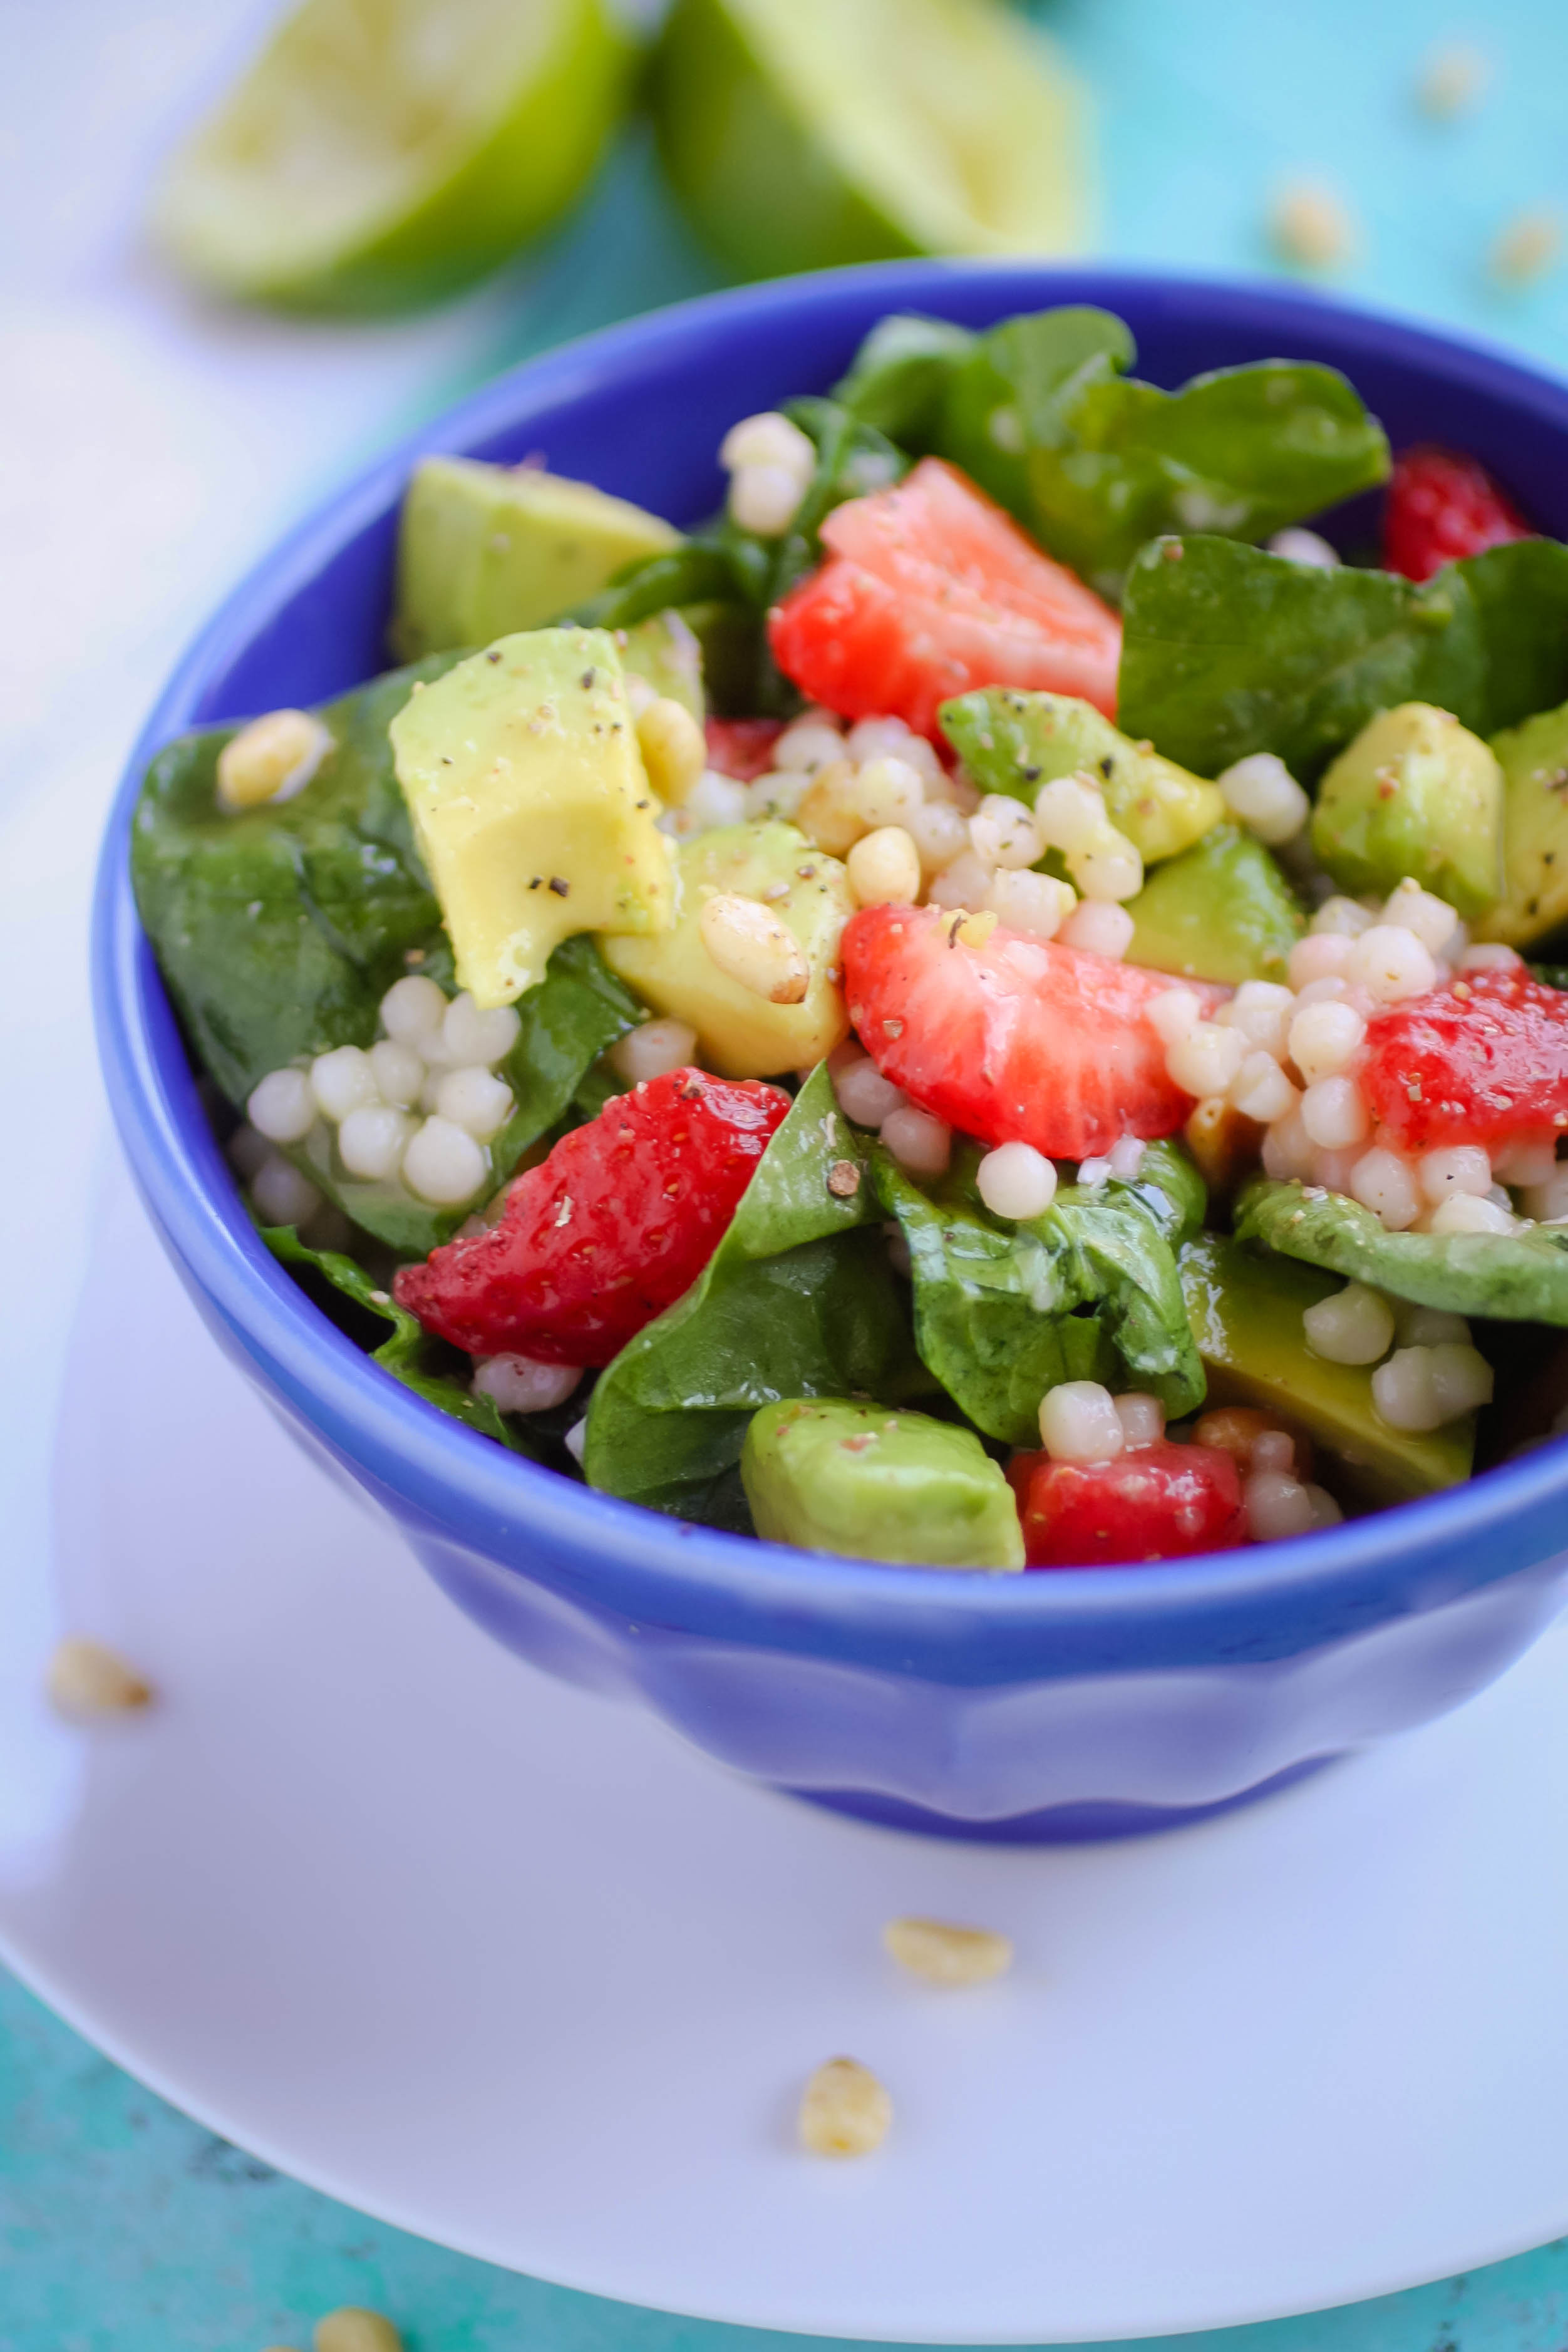 Spinach and Couscous Salad with Strawberries, Avocado & Honey-Lime Dressing is a wonderful salad for the summer. Spinach and Couscous Salad with Strawberries, Avocado & Honey-Lime Dressing is a salad you need to toss together today!